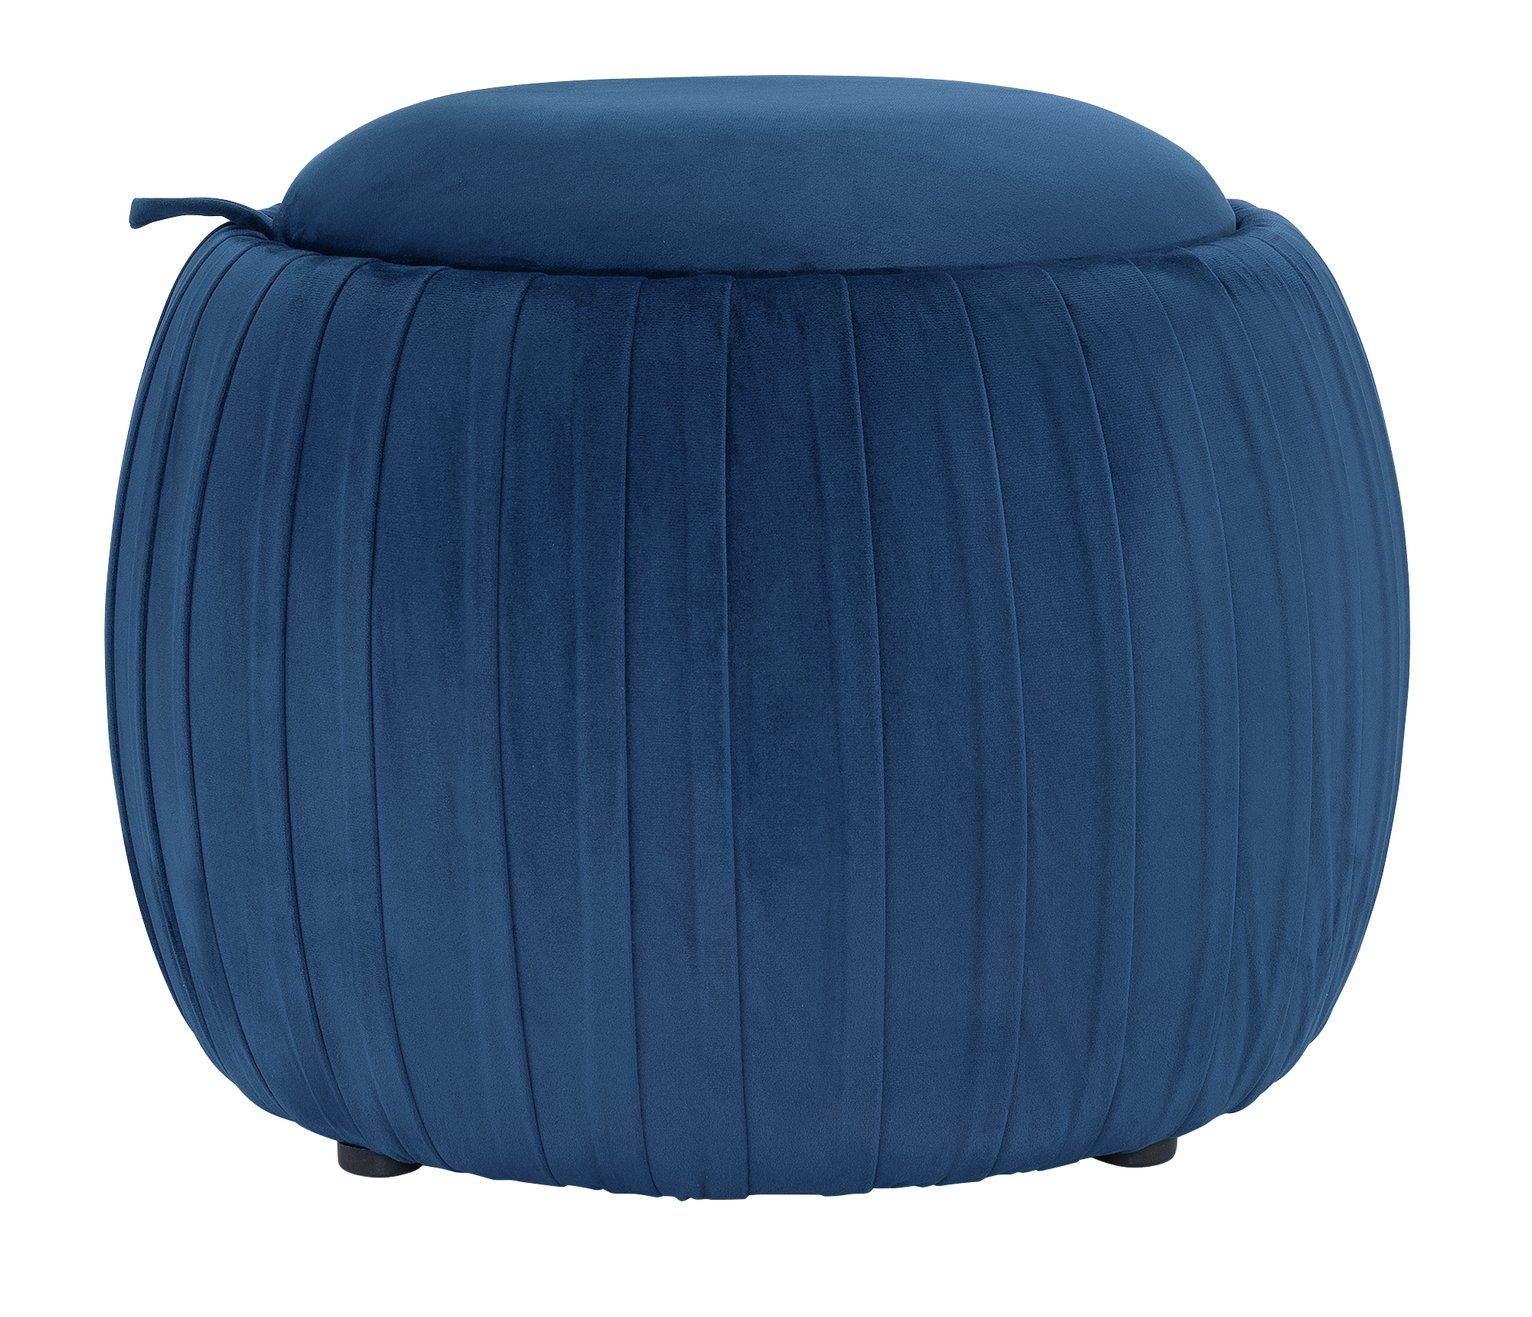 Argos Home Ellie Velvet Storage Footstool - Navy